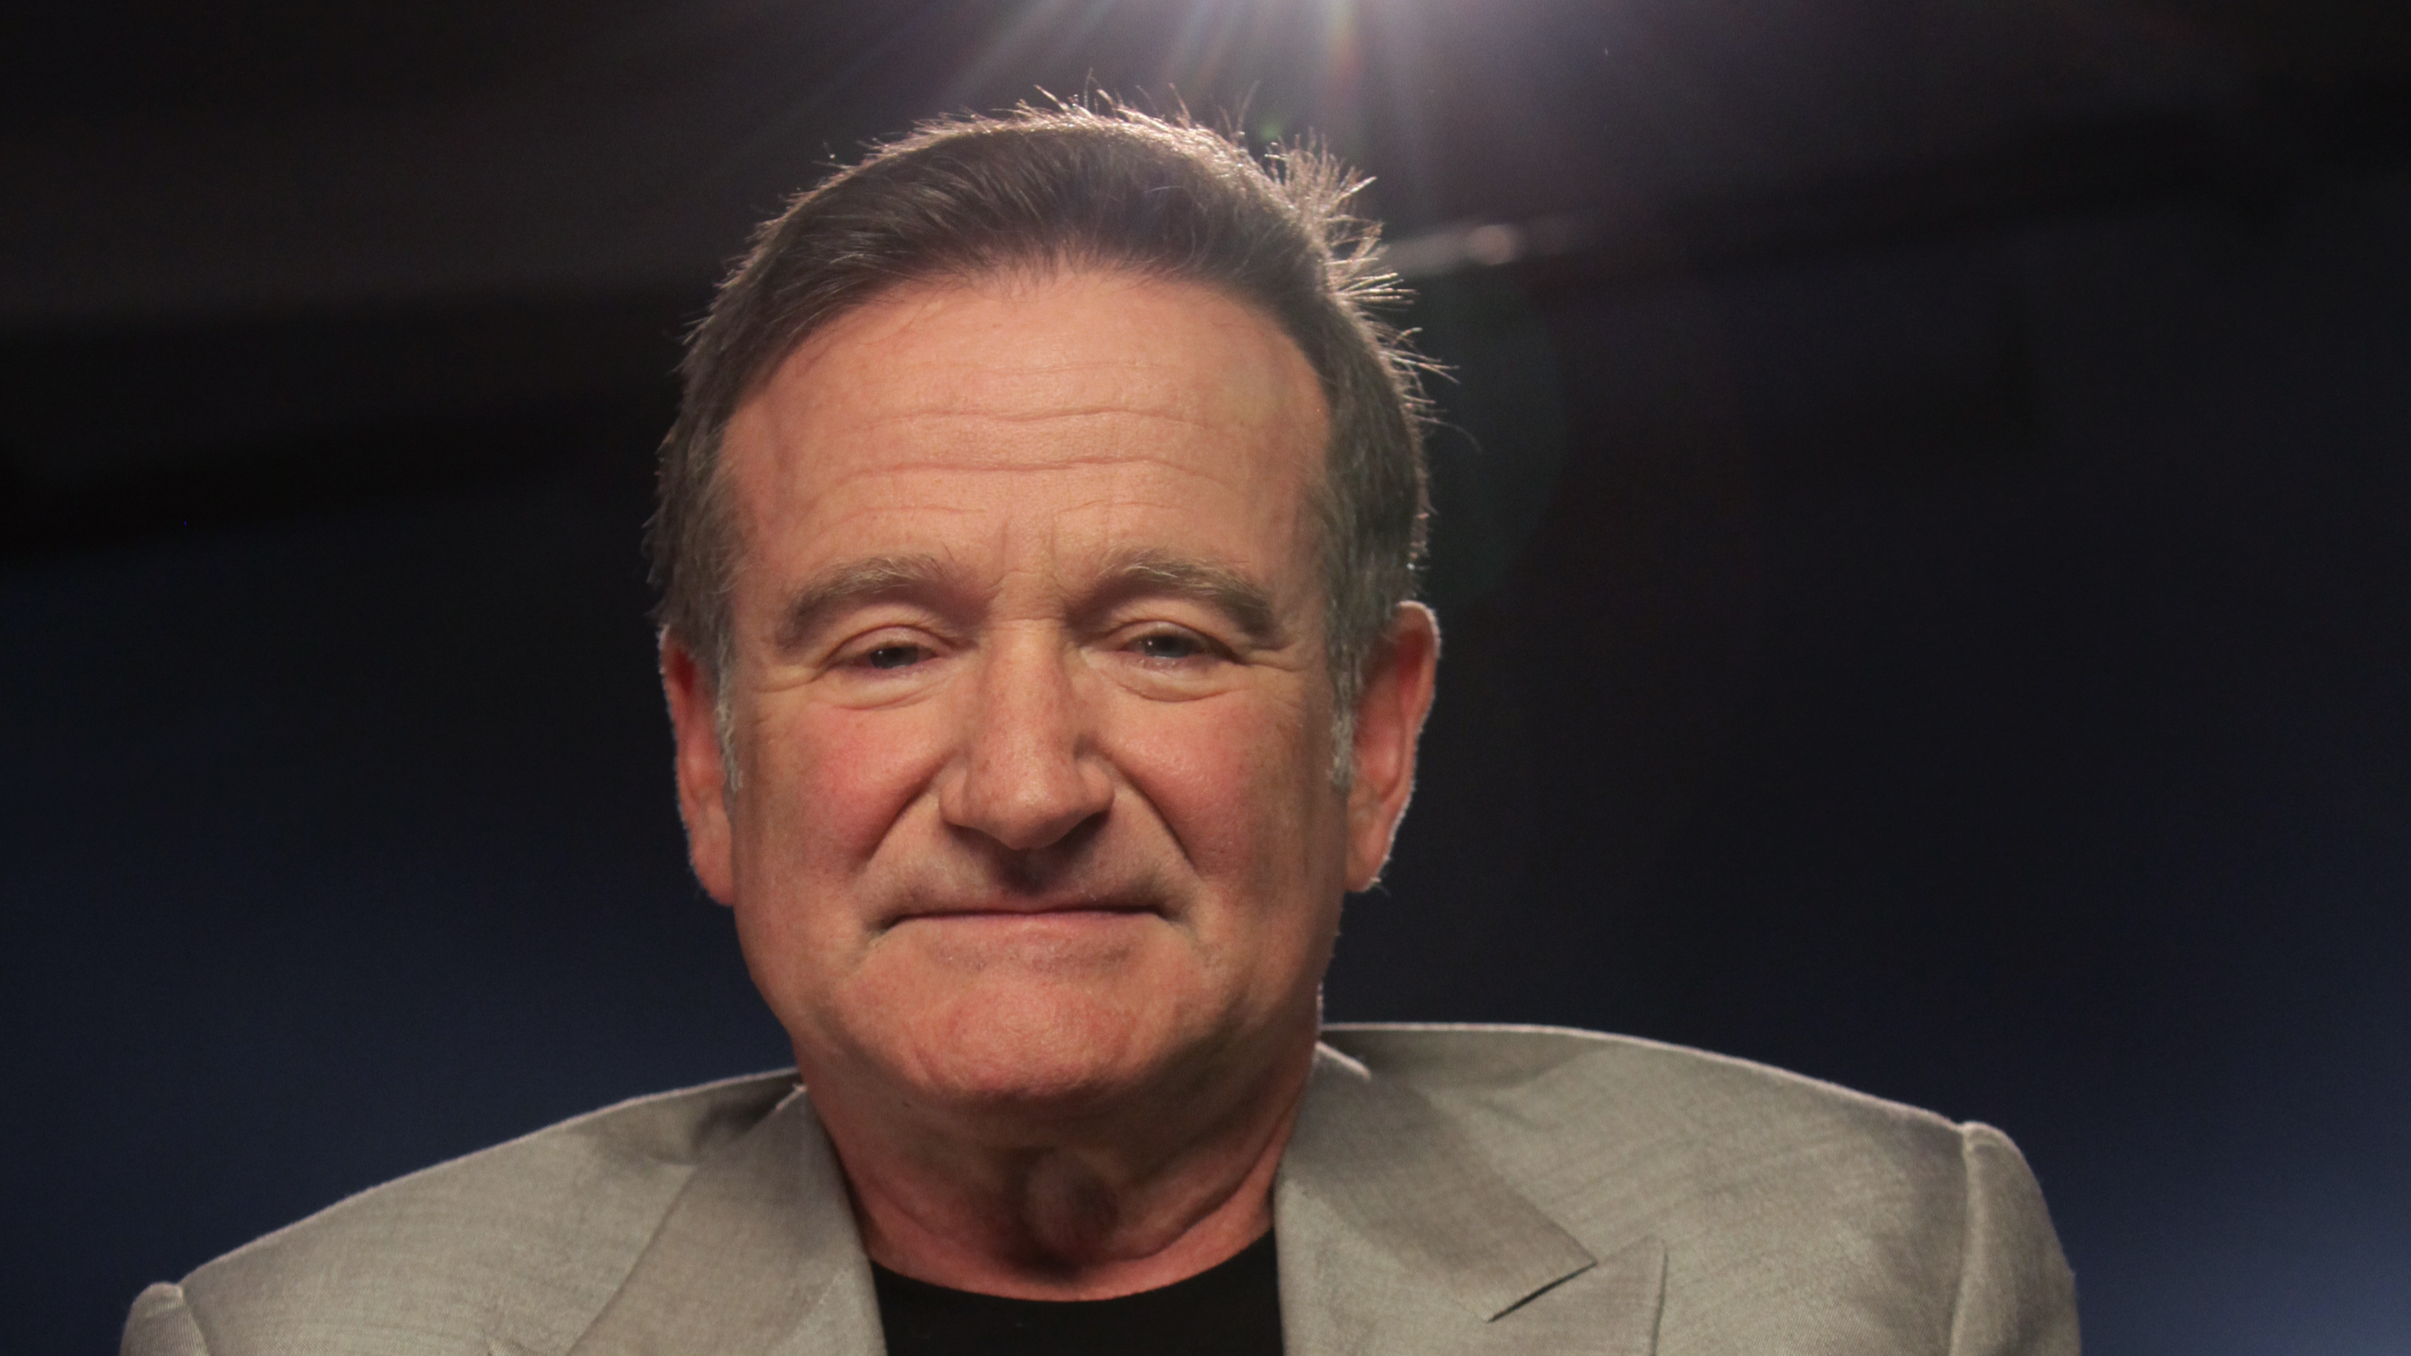 Remembering Robin Williams On The Fourth Anniversary Of His Death